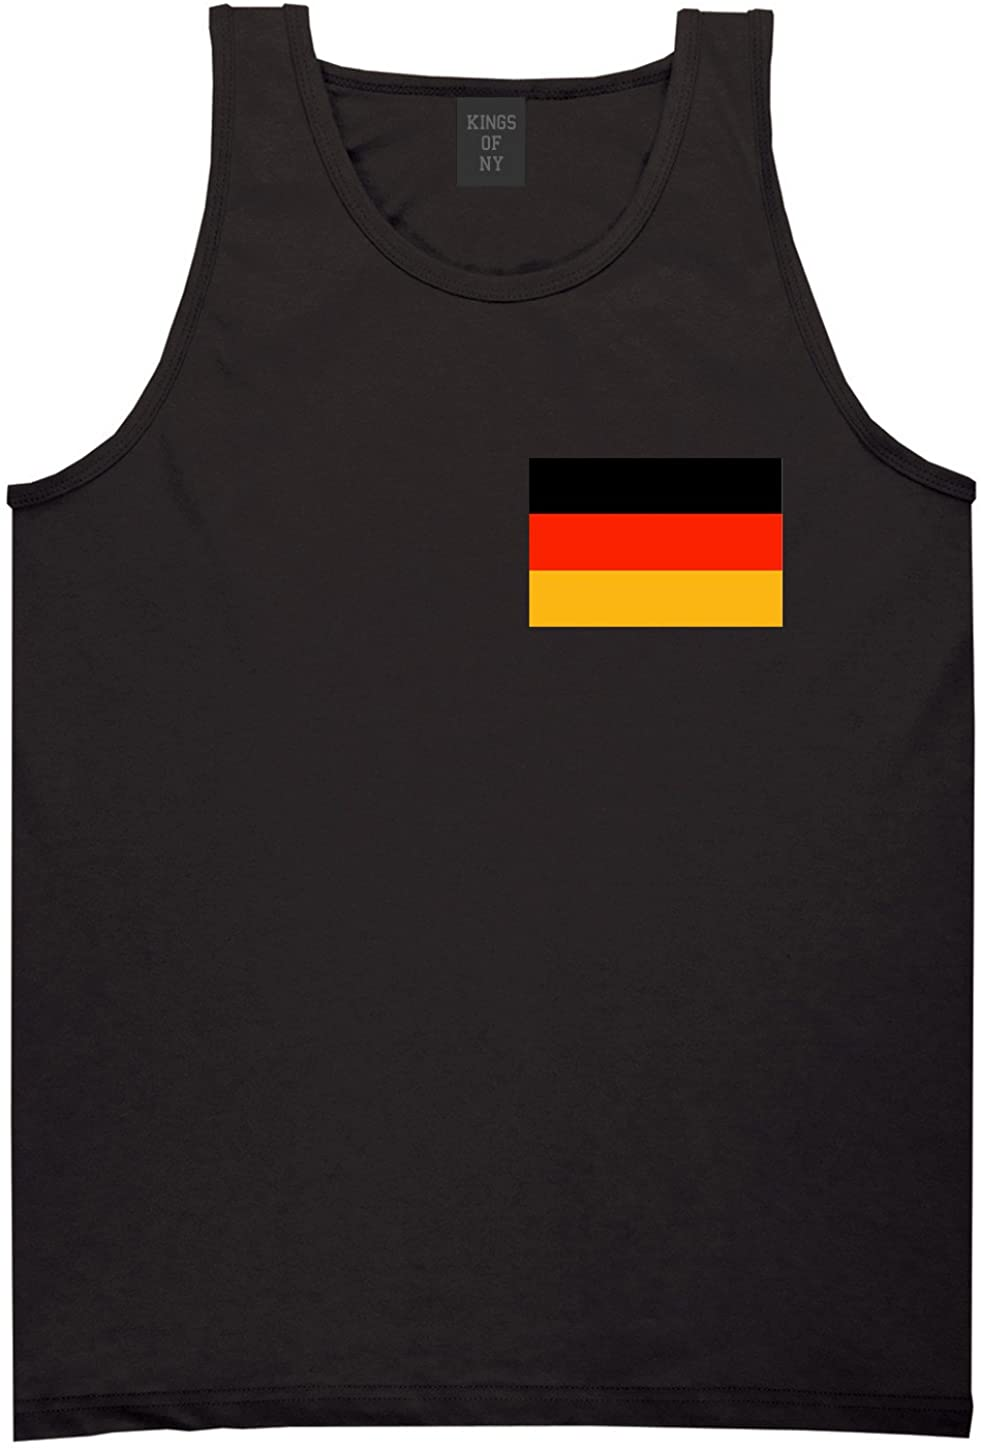 Kings Of NY Germany Flag Country Chest Tank Top Shirt